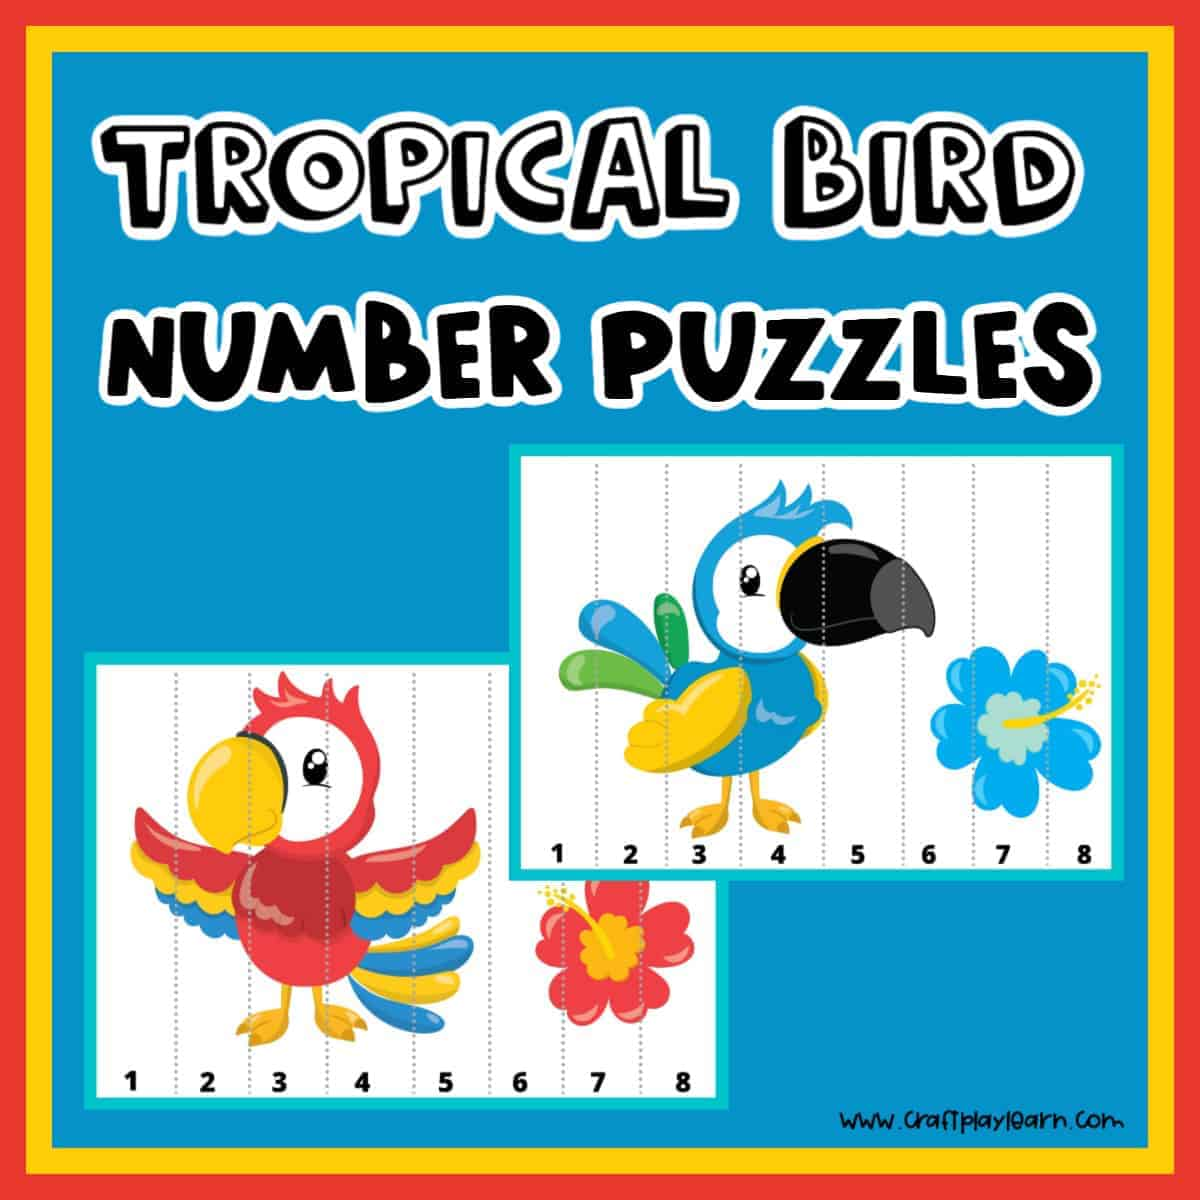 tropical bird number puzzles for kids